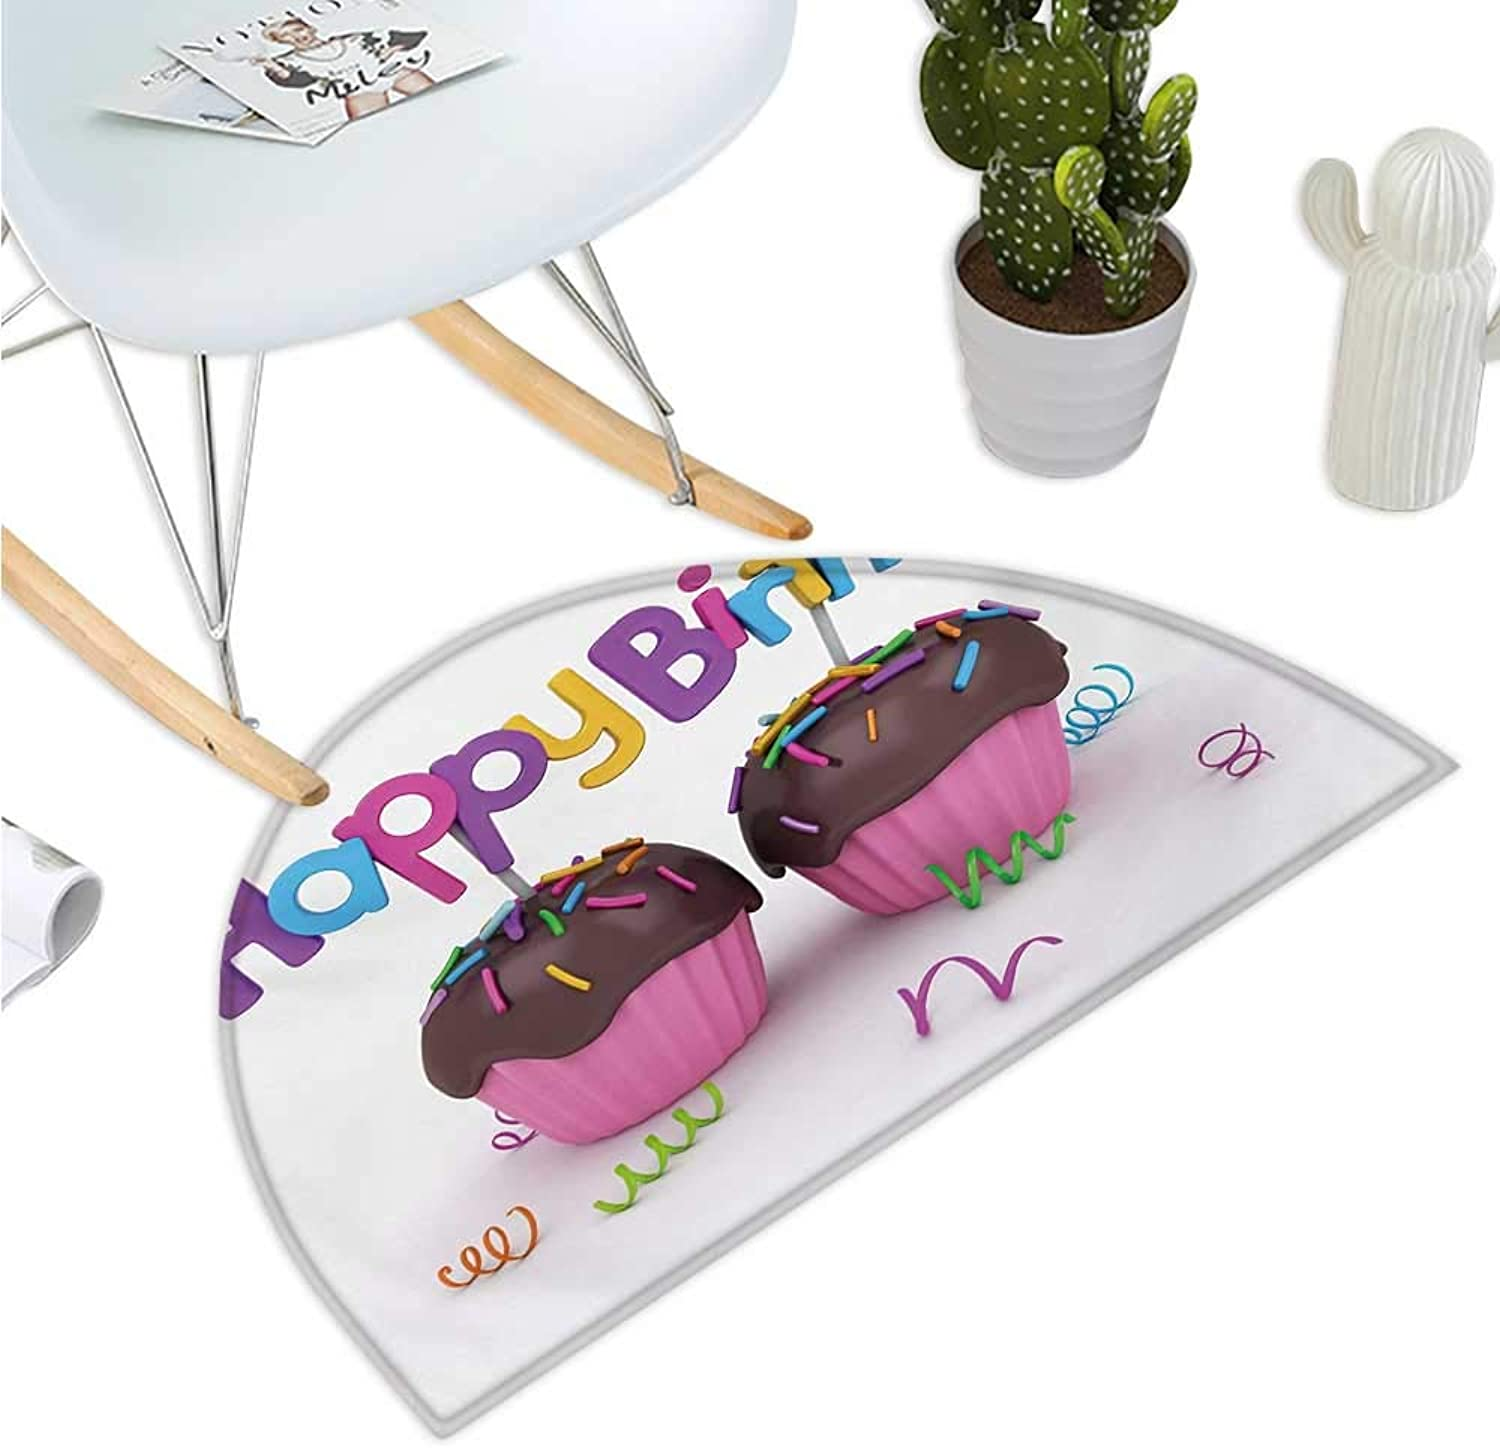 Birthday Semicircular Cushion 3D Illustration of Chocolate Covered Cupcakes with Greetings Attached Celebration Entry Door Mat H 35.4  xD 53.1  Multicolor